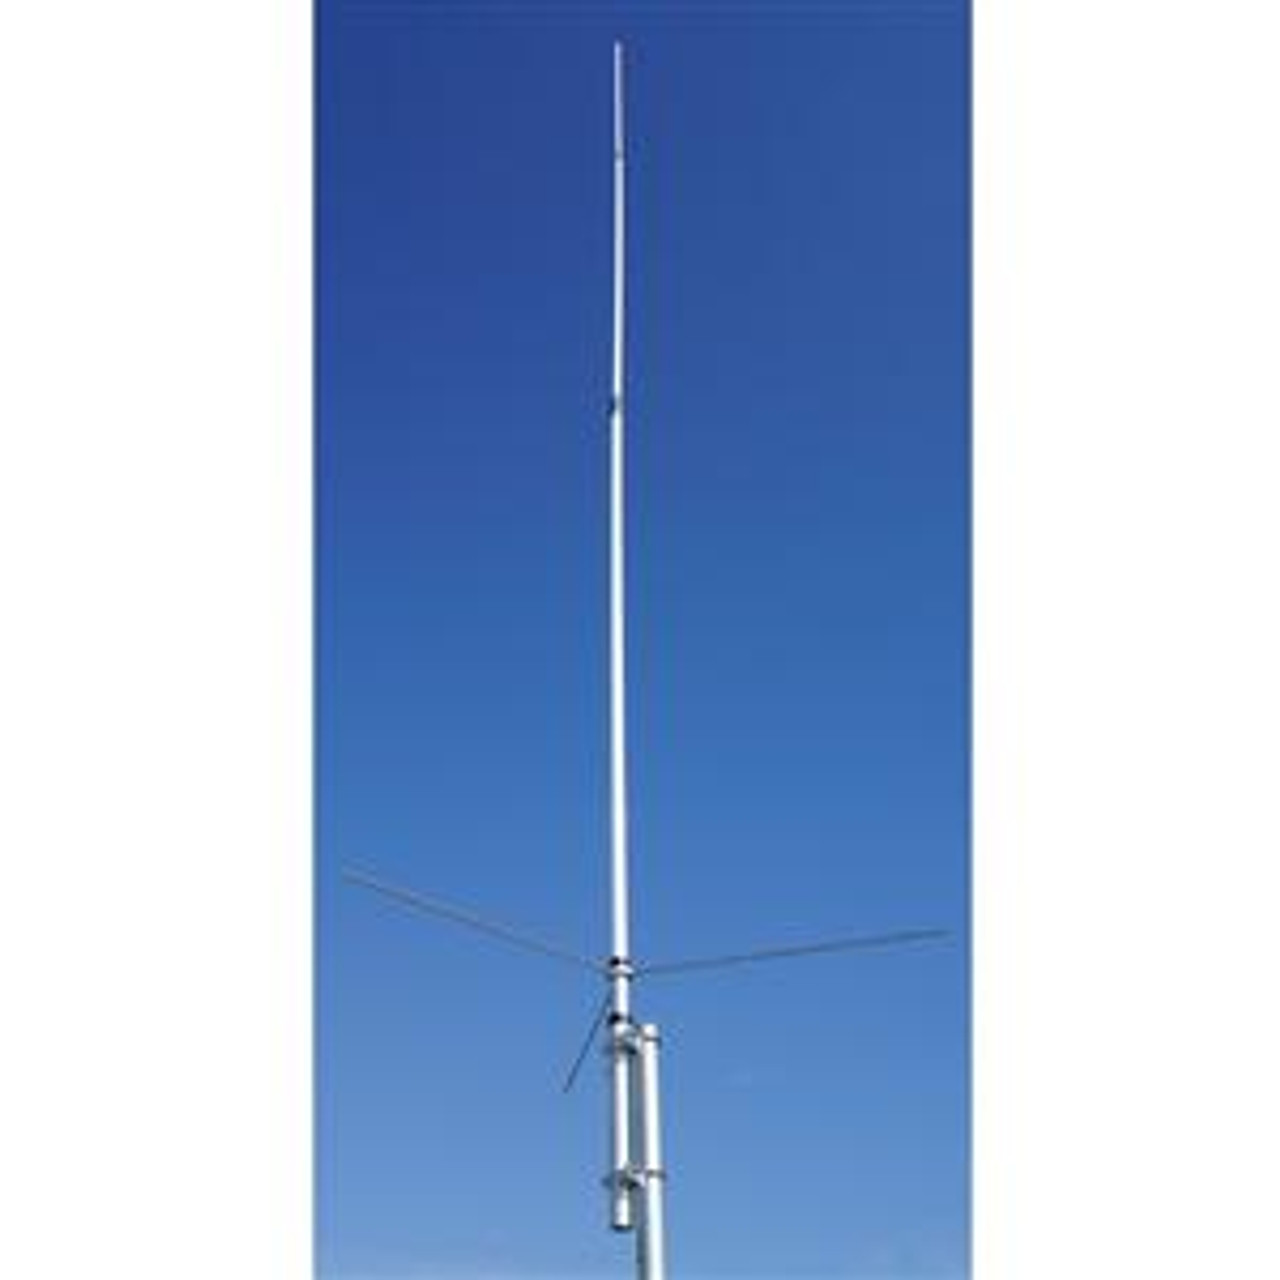 Tram-Browning BR-1481 Dual Band VHF/UHF Base Antenna